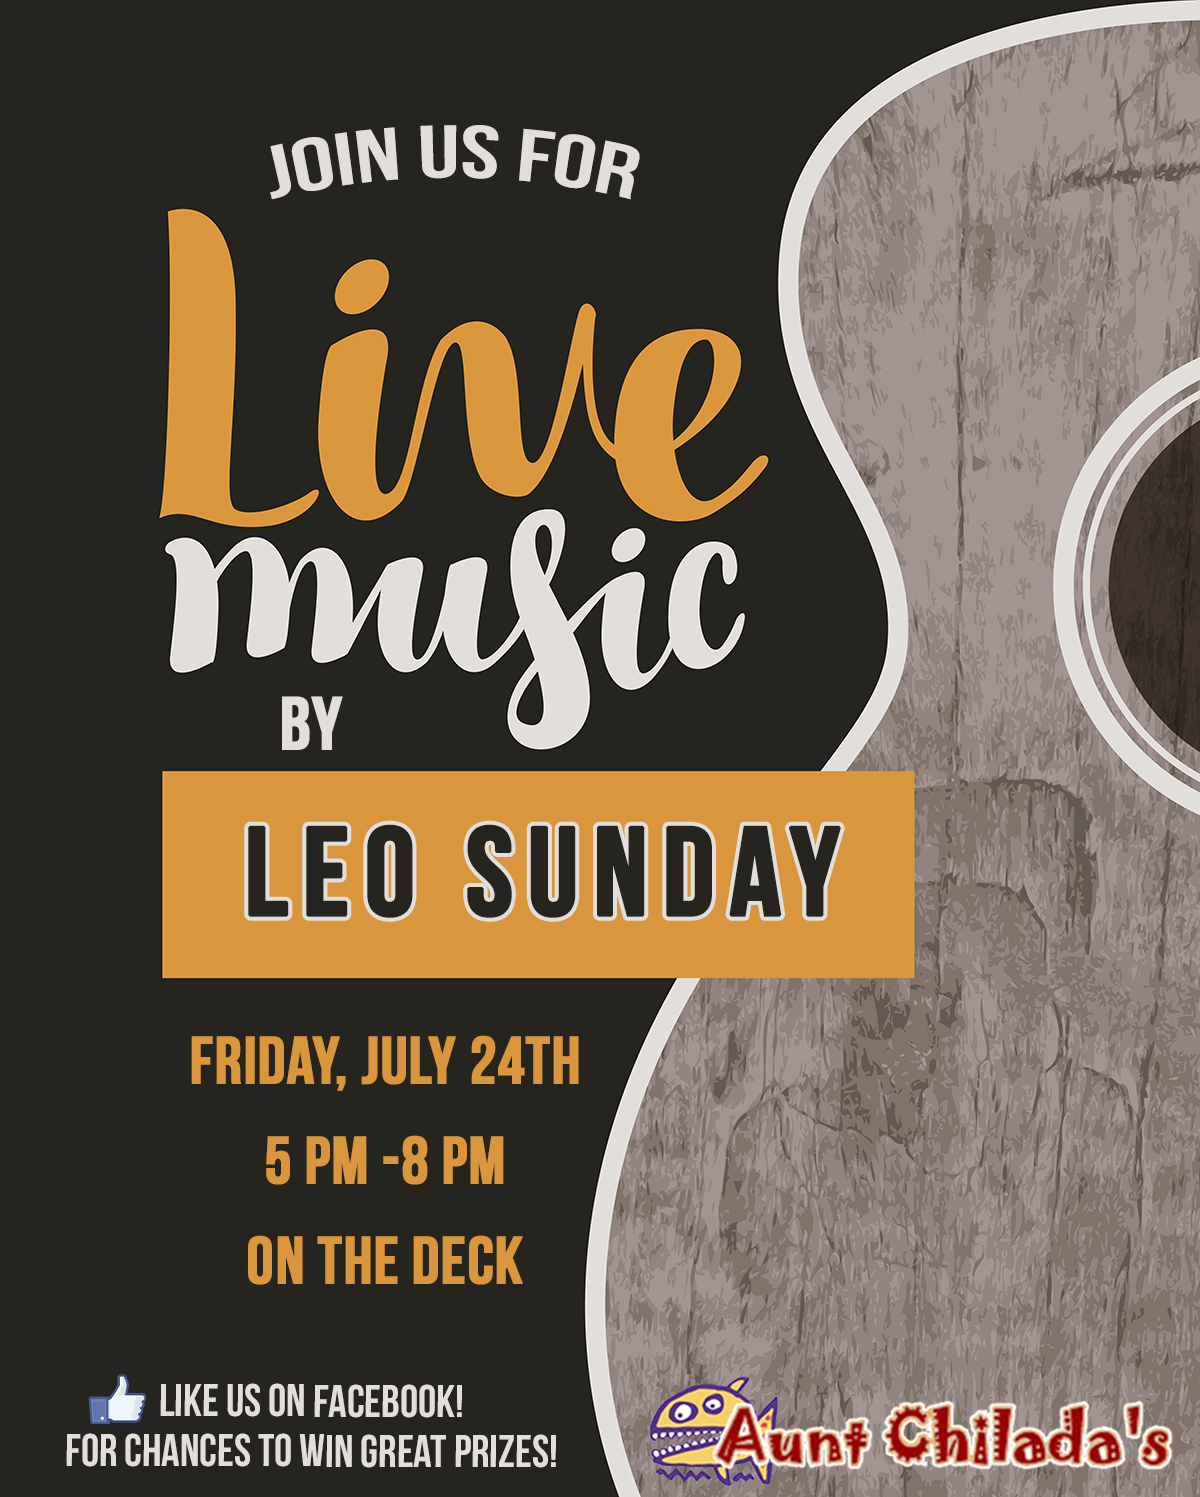 join us for live music by Leo Sunday Friday, July 24th 5-8 pm on the deck. like us on facebook! for chances to win great prizes! aunt chilada's